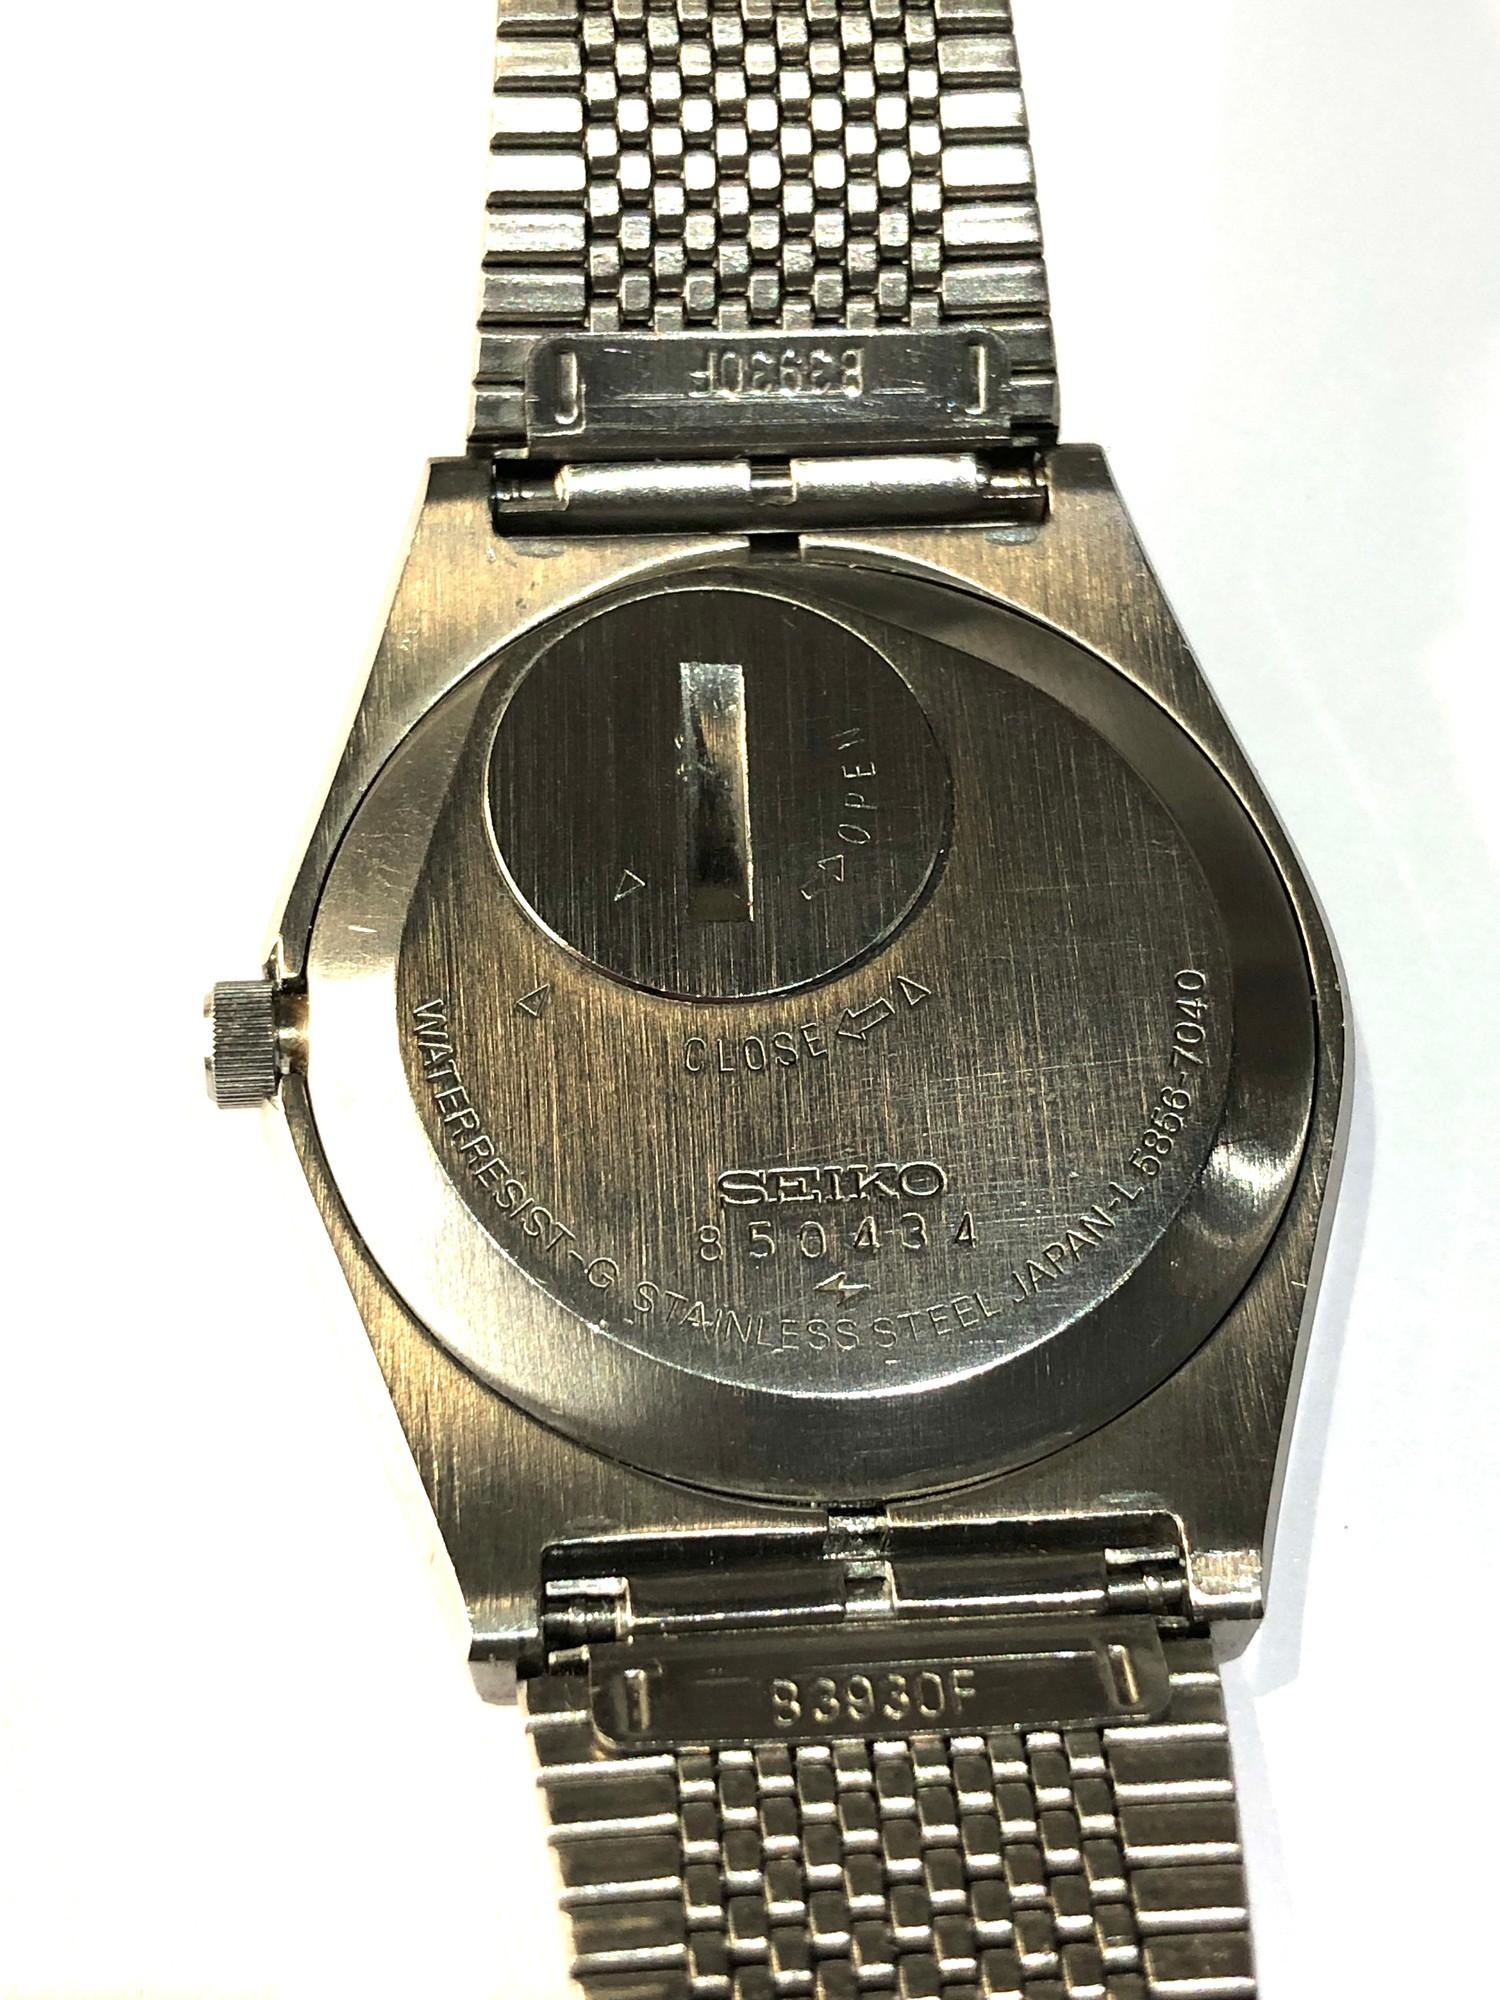 Vintage Seiko king quartz 5856-7040 watch is in working order but no warranty given - Image 5 of 5